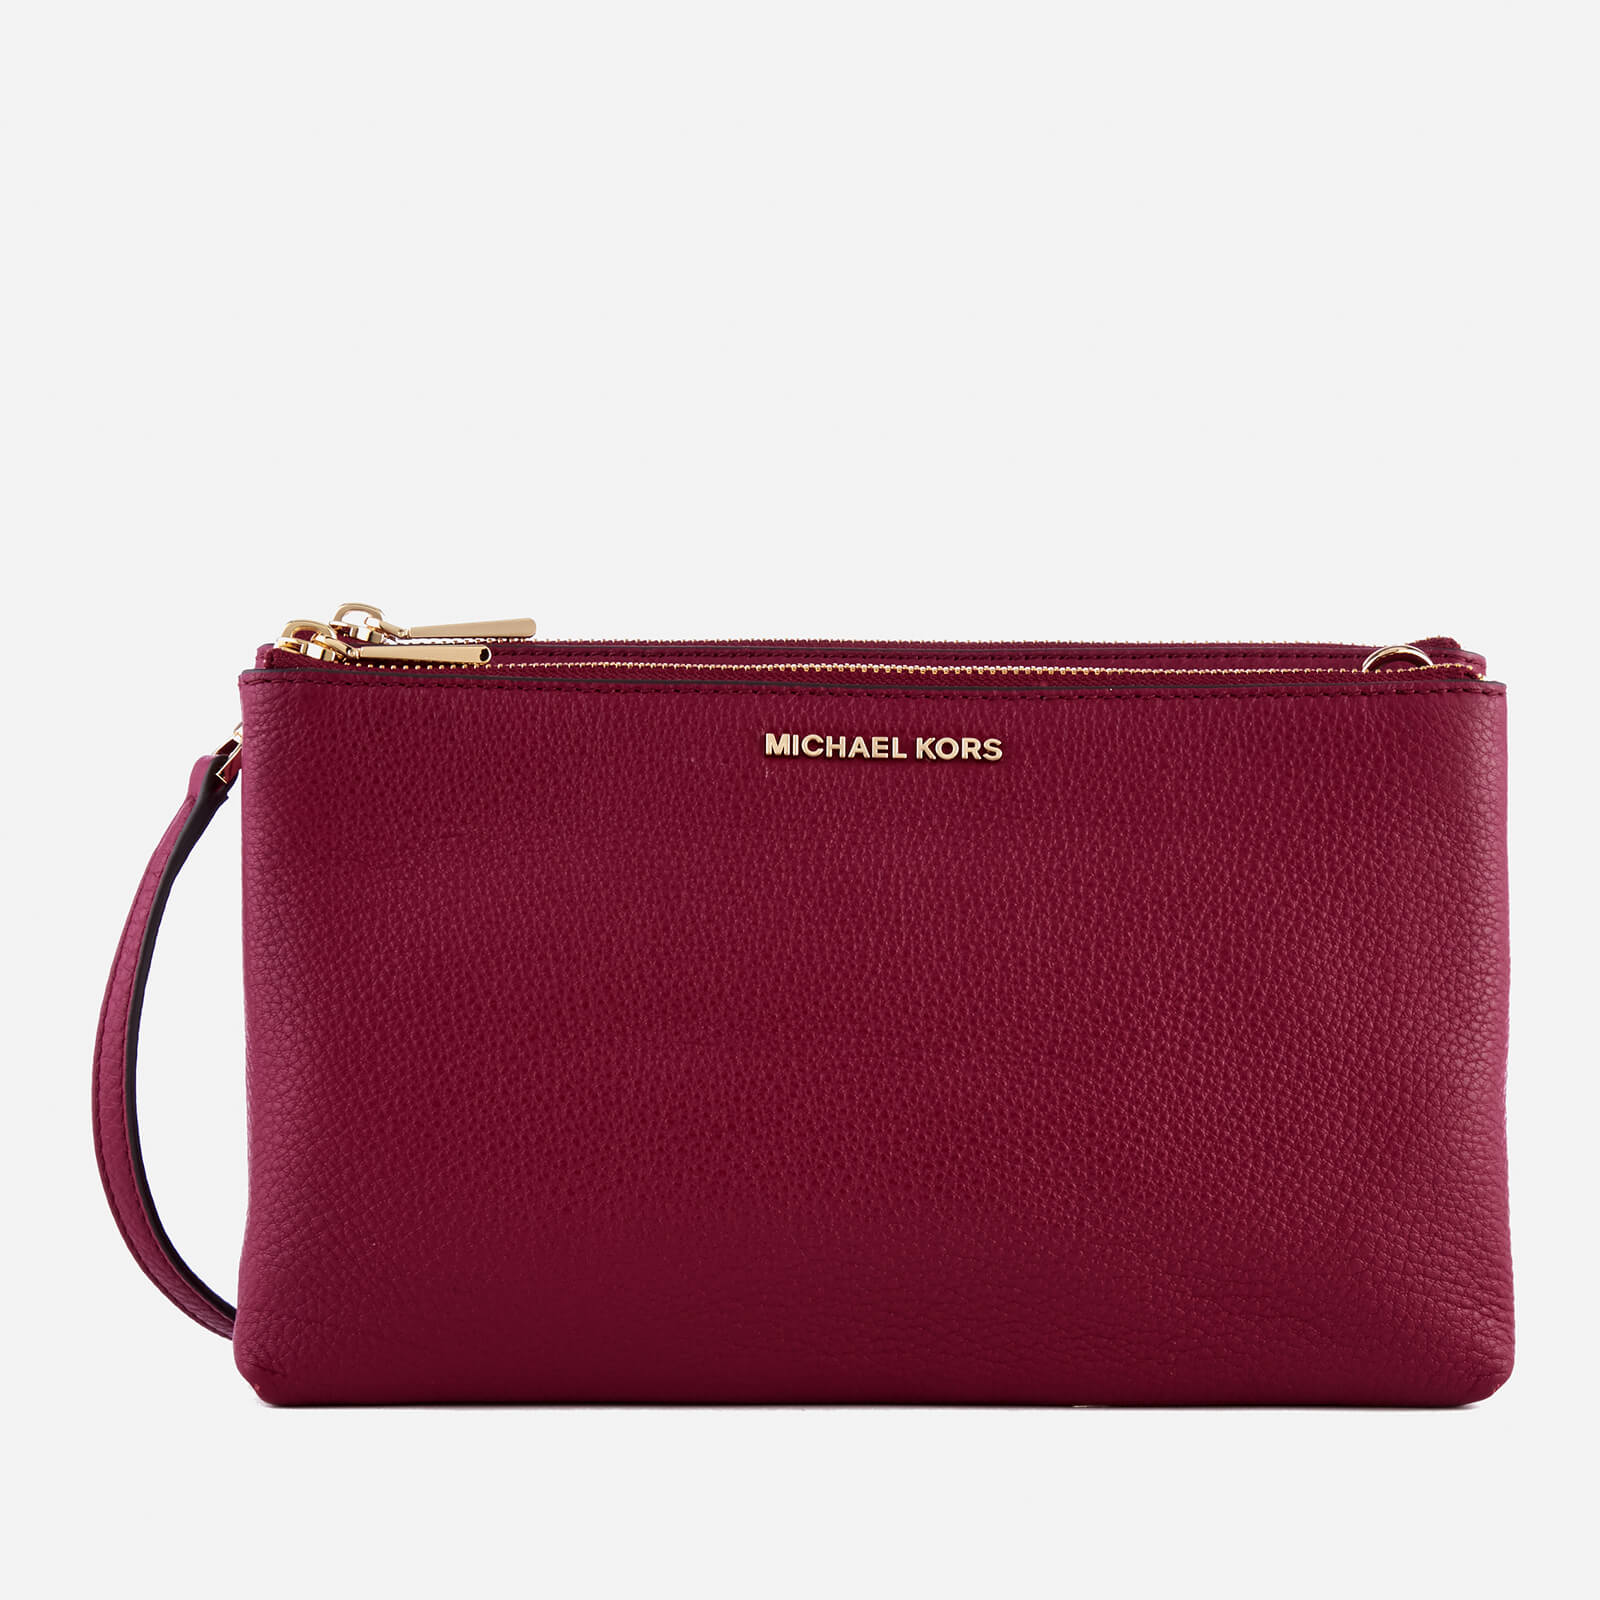 9a5d647a7daf MICHAEL MICHAEL KORS Women's Double Zip Cross Body Bag - Mulberry - Free UK  Delivery over £50